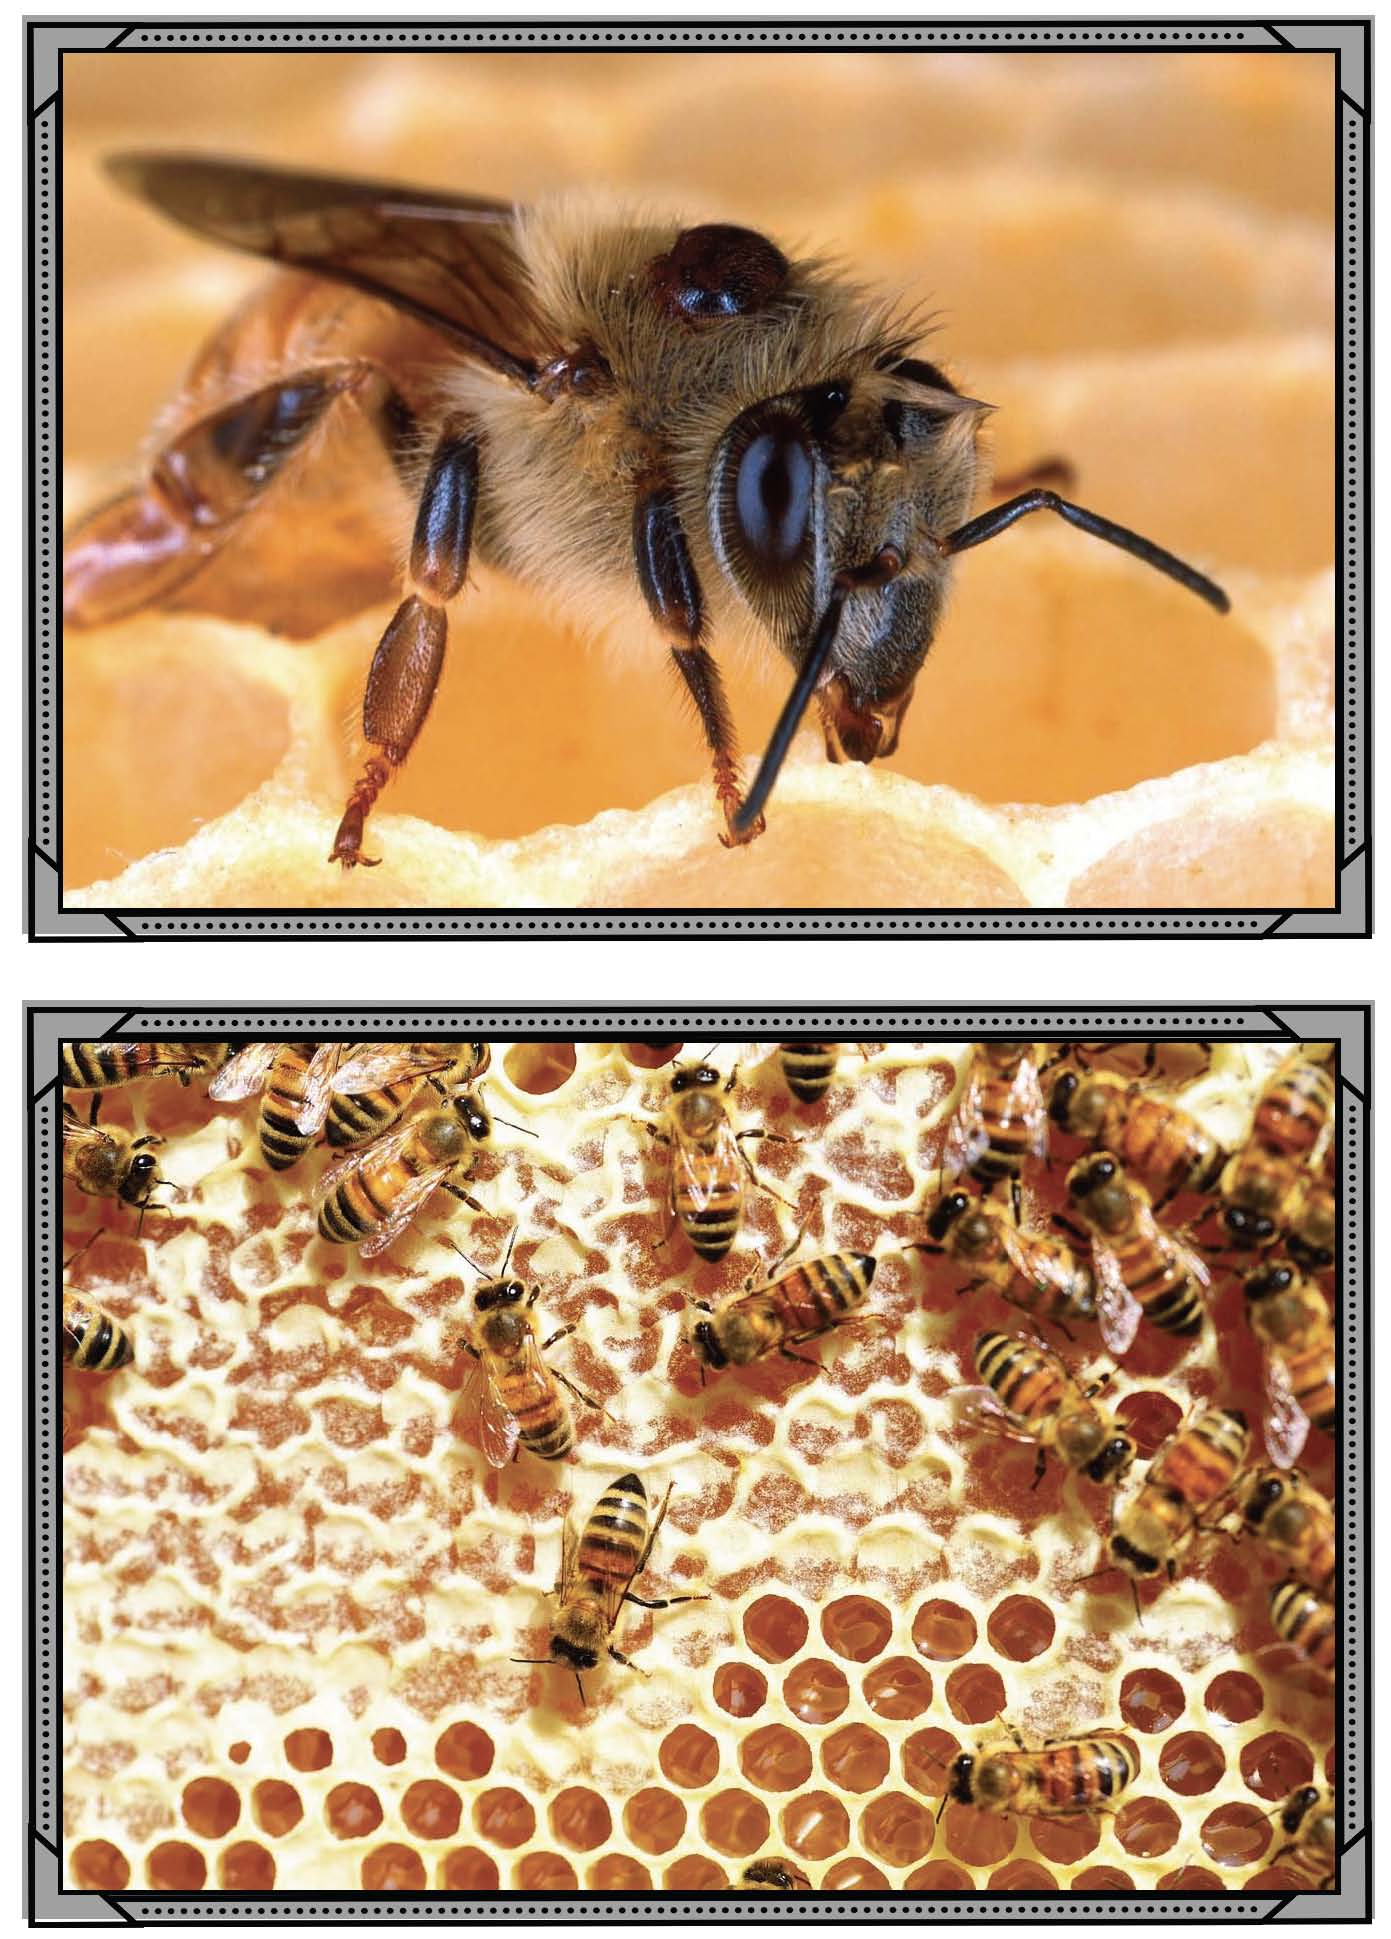 real photographs of bees their life cycle hives honey beekeepers Page 1